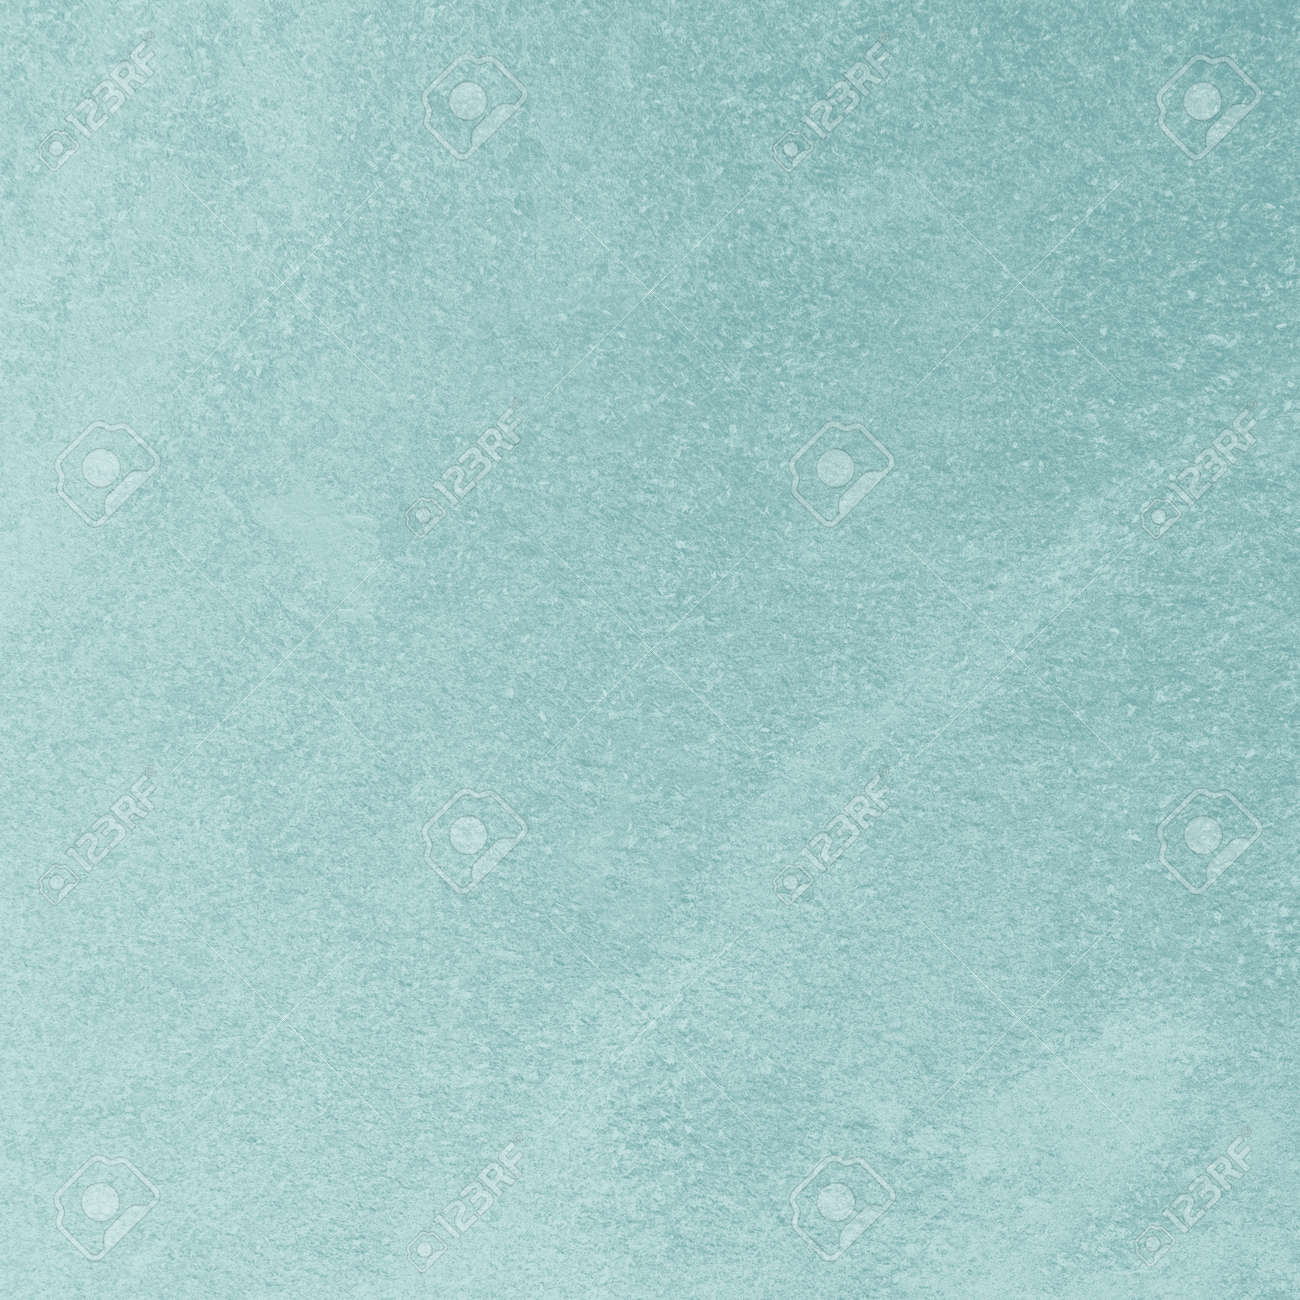 Wall paper design. Texture of light blue concrete surface as background - 157212400